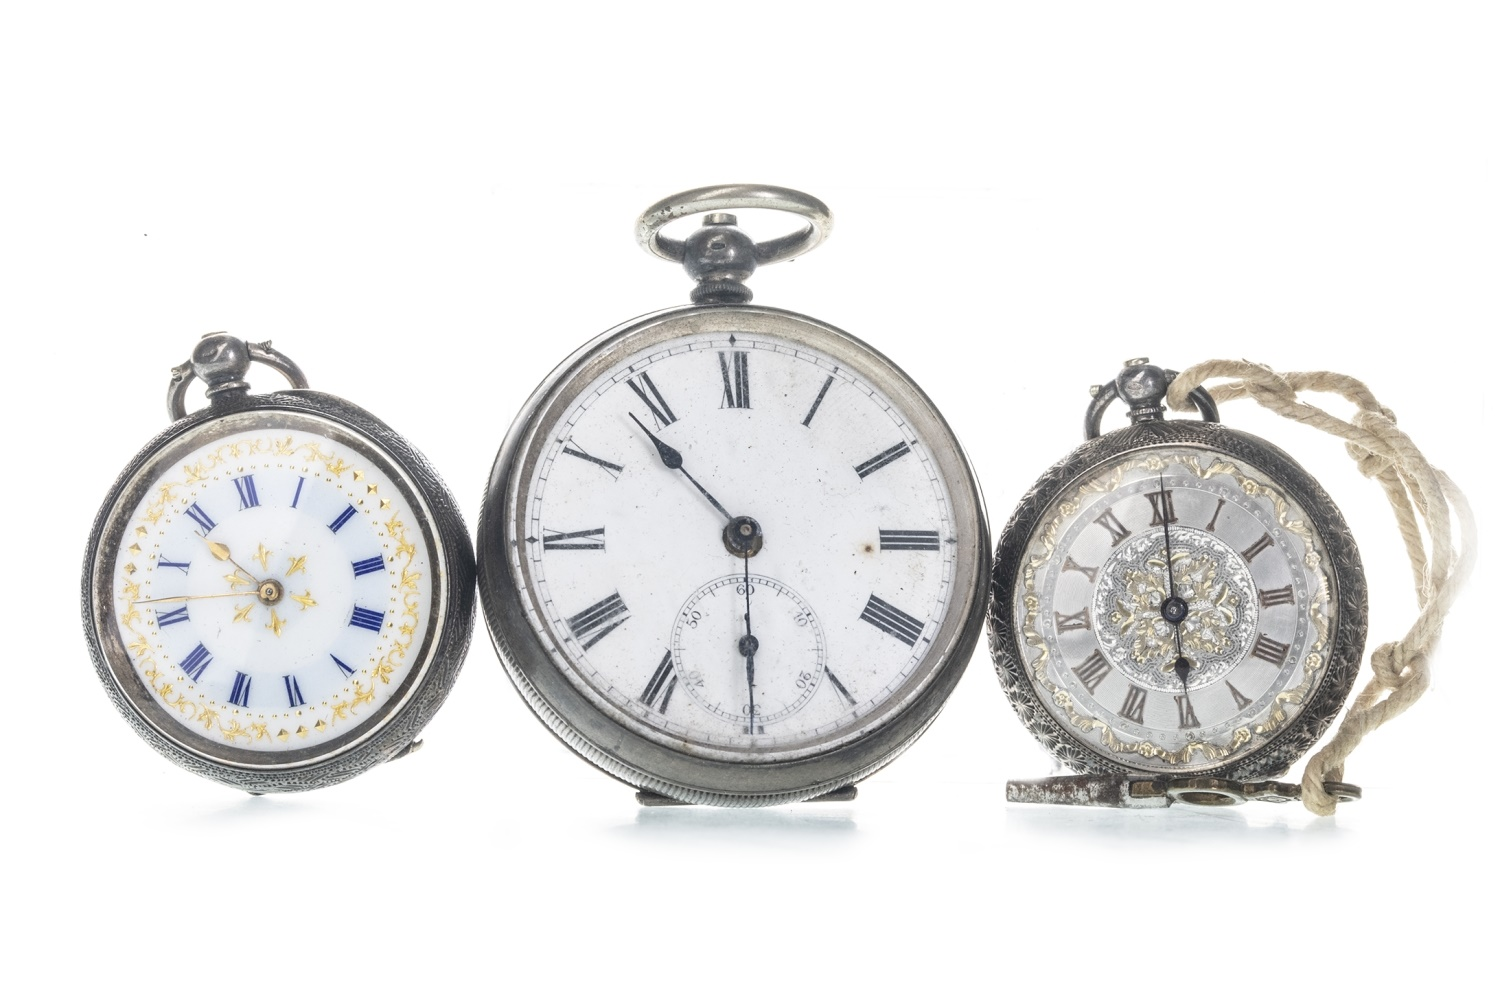 Lot 716 - A CONTINENTAL SILVER OPEN FACE POCKET WATCH AND TWO FOB WATCHES